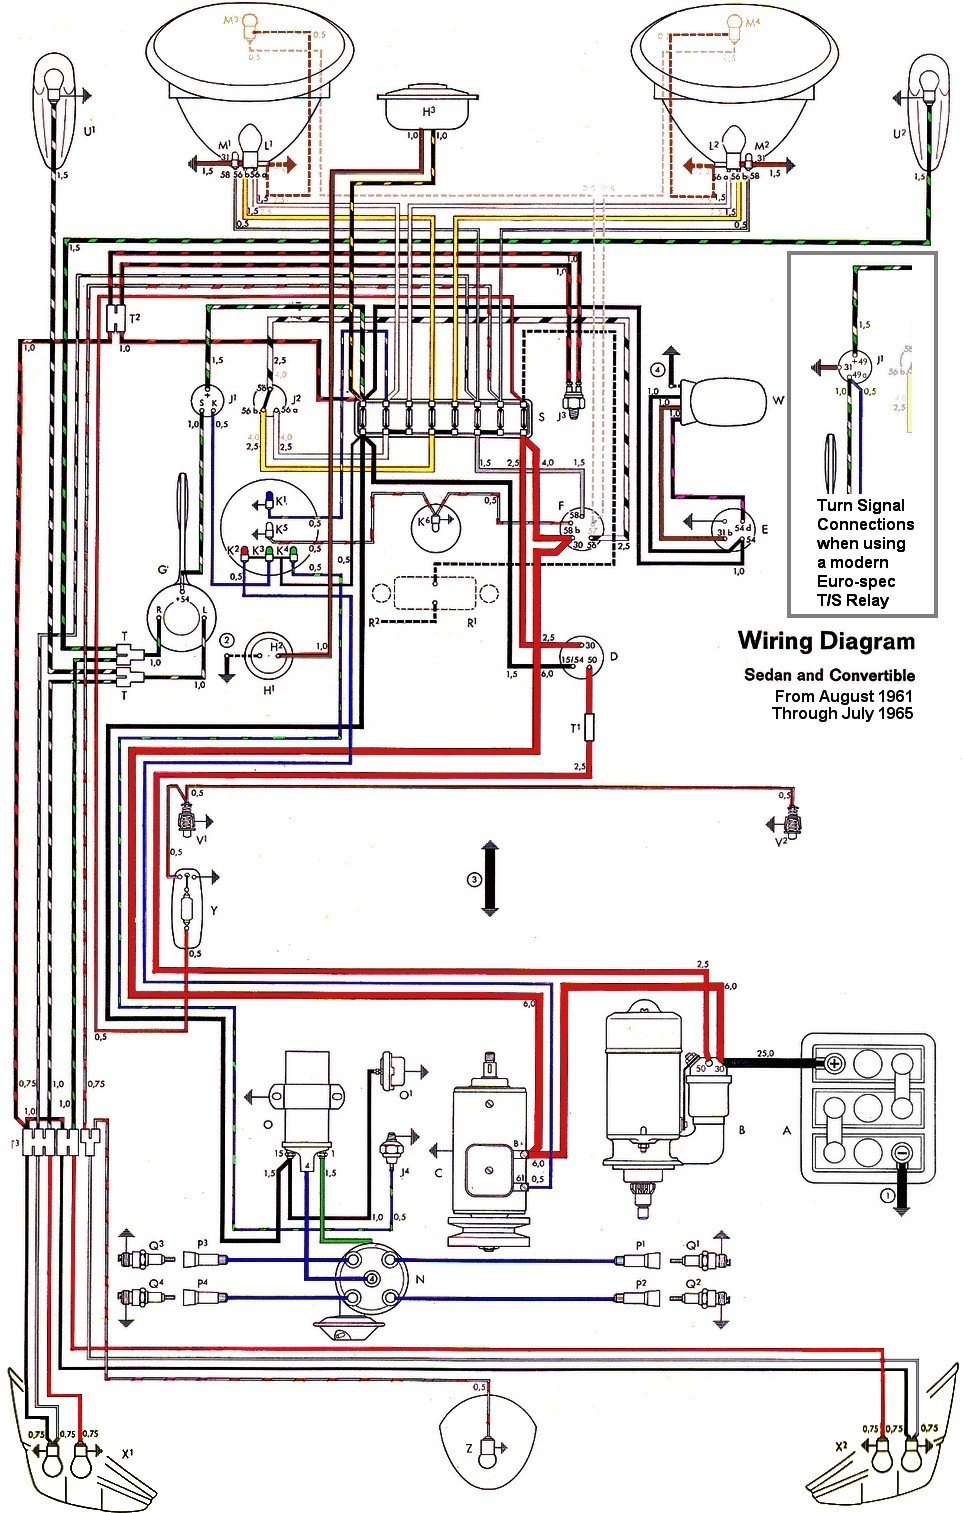 bug_62 65withinset wiring diagram vw beetle sedan and convertible 1961 1965 vw wiring diagram for 1973 vw thing at alyssarenee.co